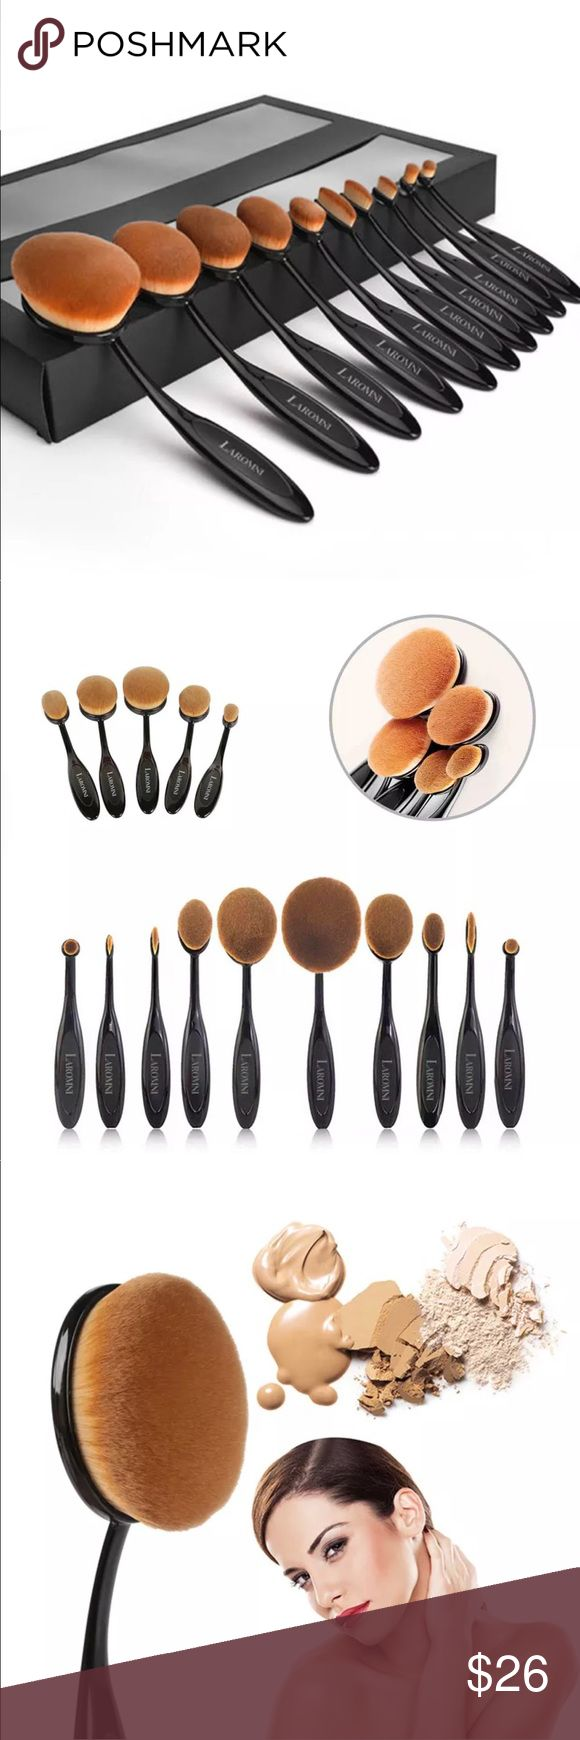 """10 pc oval makeup brush set Beautiful boxed set of oval """"toothbrush """" style makeup brushes comes with 10 pieces . (See last picture for specific styles ). These brushes have super dense , yet soft bristles , slightly Bendable handle to access the full curvature of ones face , full size at approx 5""""-6"""", many different styles for eyes , cheeks, face etc . The possibilities are endless . Makeup Brushes & Tools"""